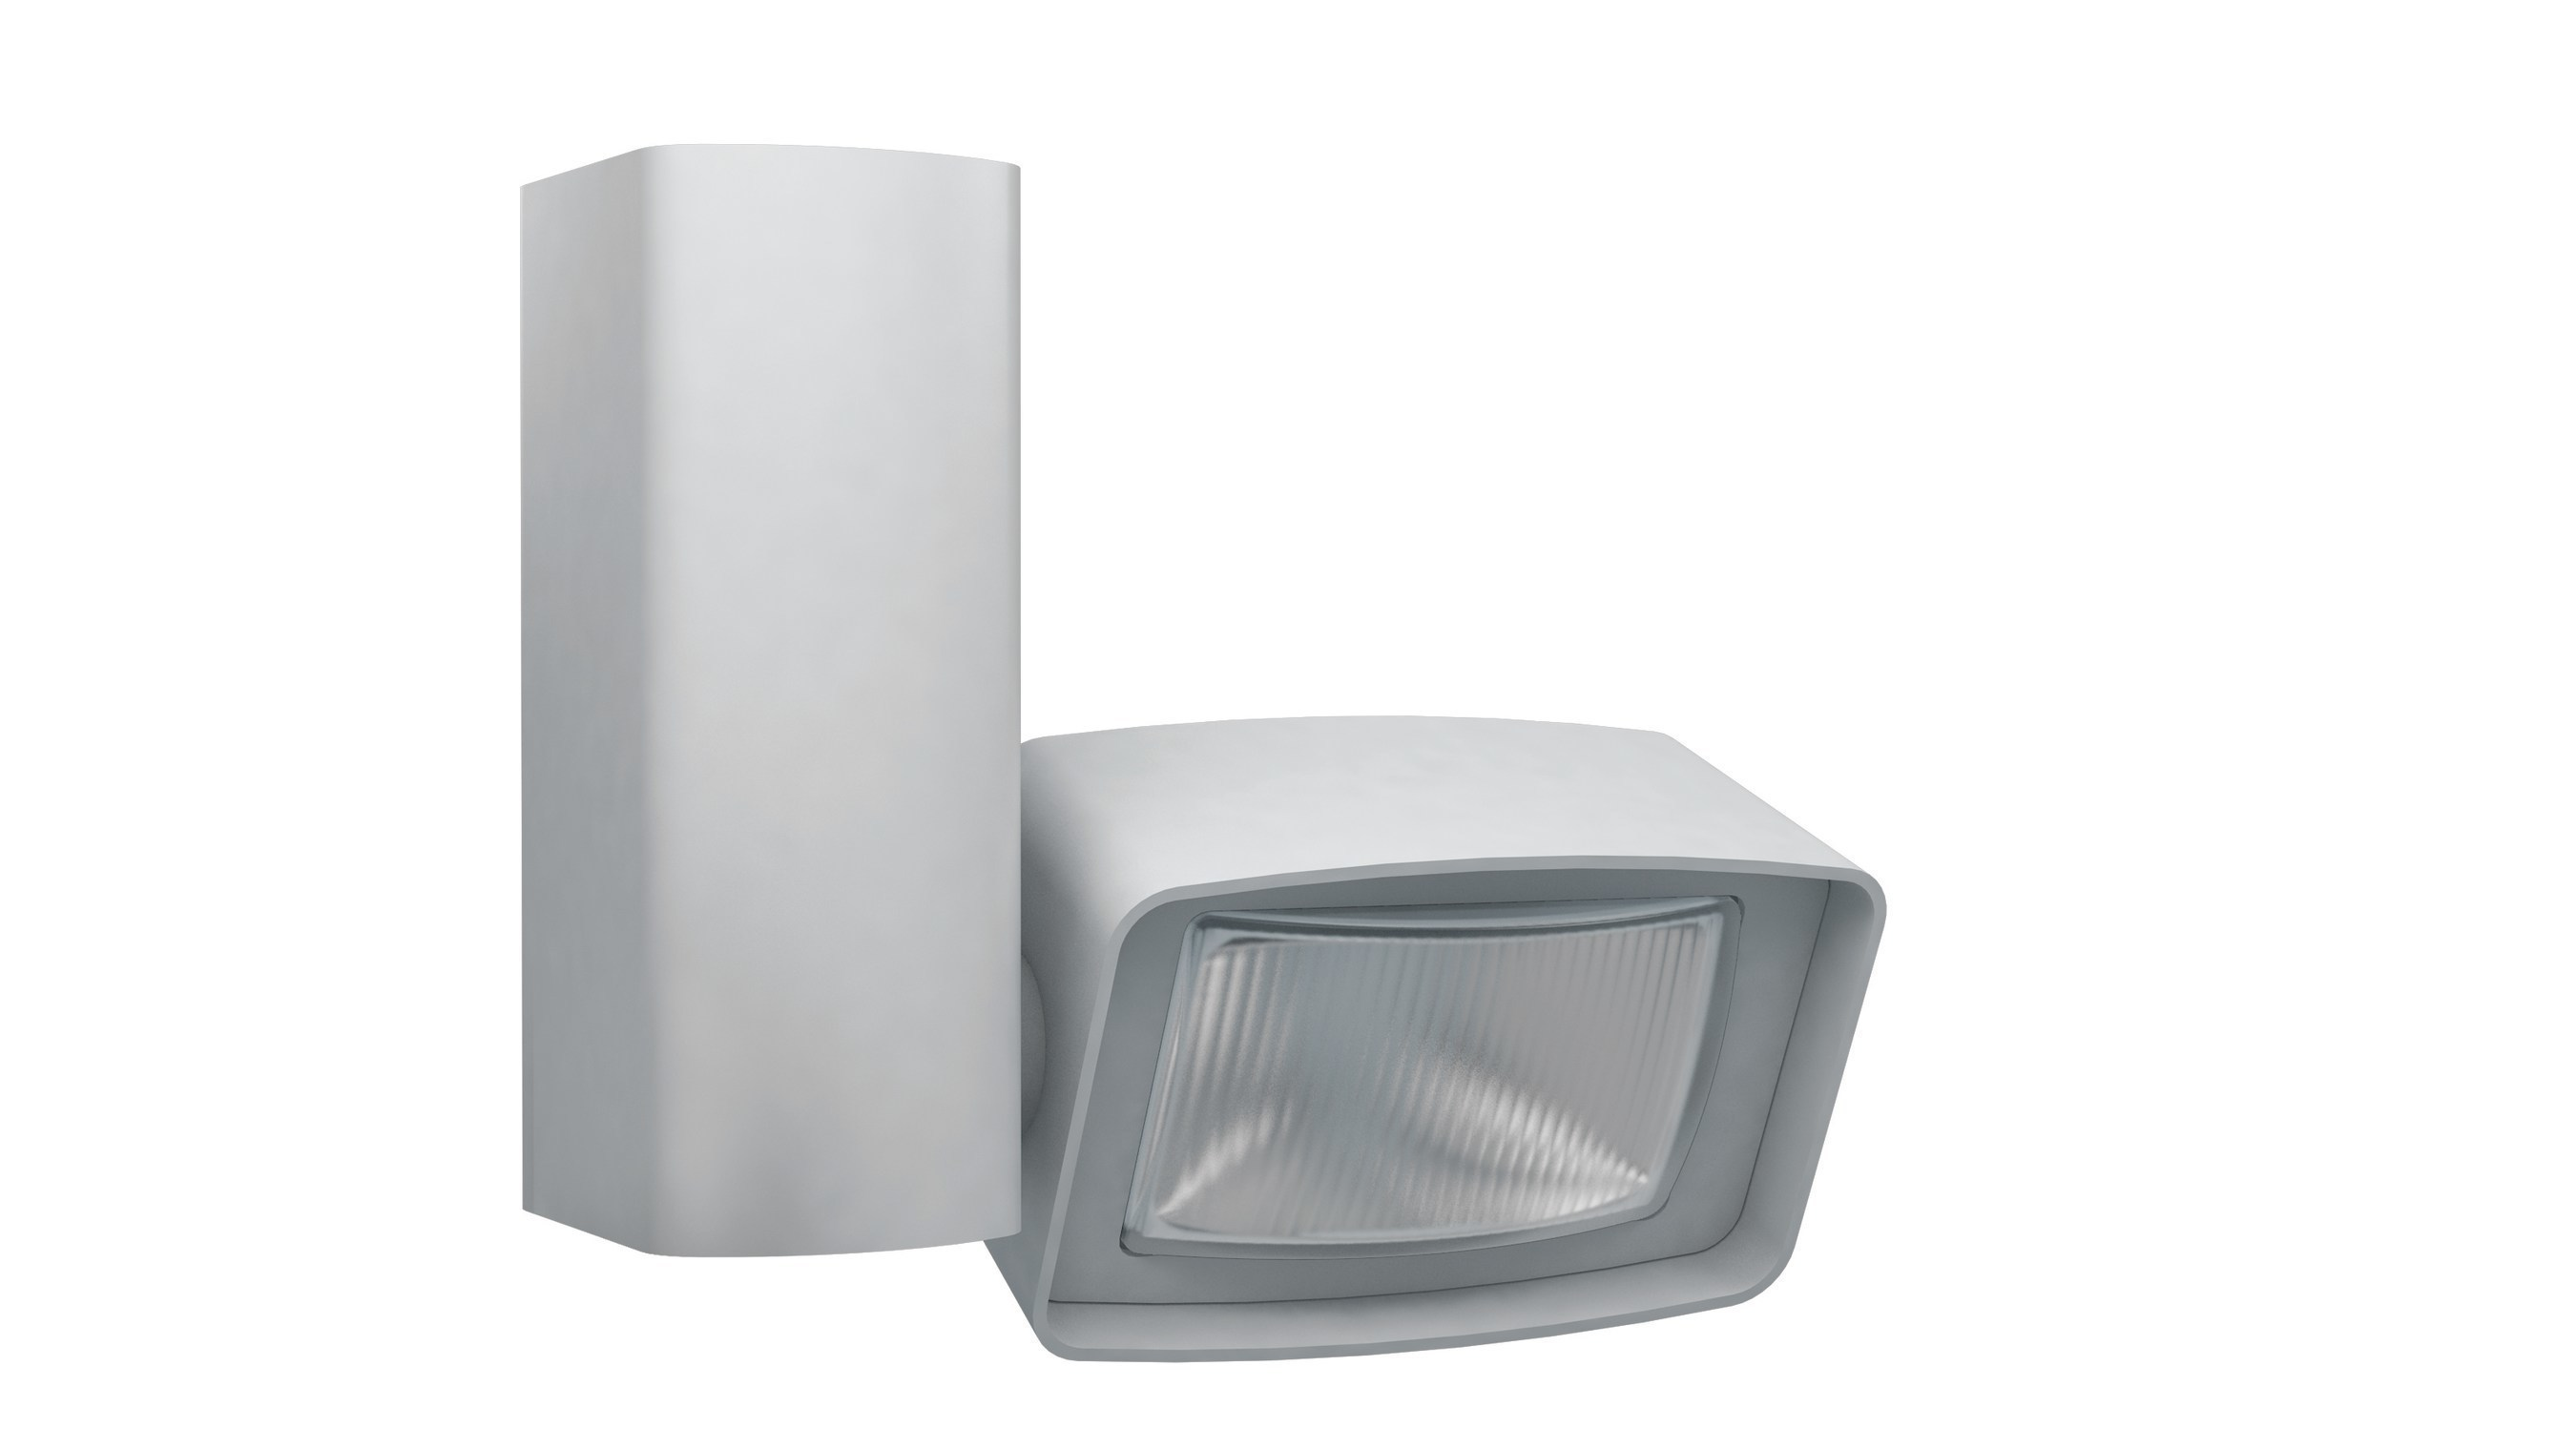 New MURRO LED Wall Wash by Amerlux delivers more light on walls with unique optics